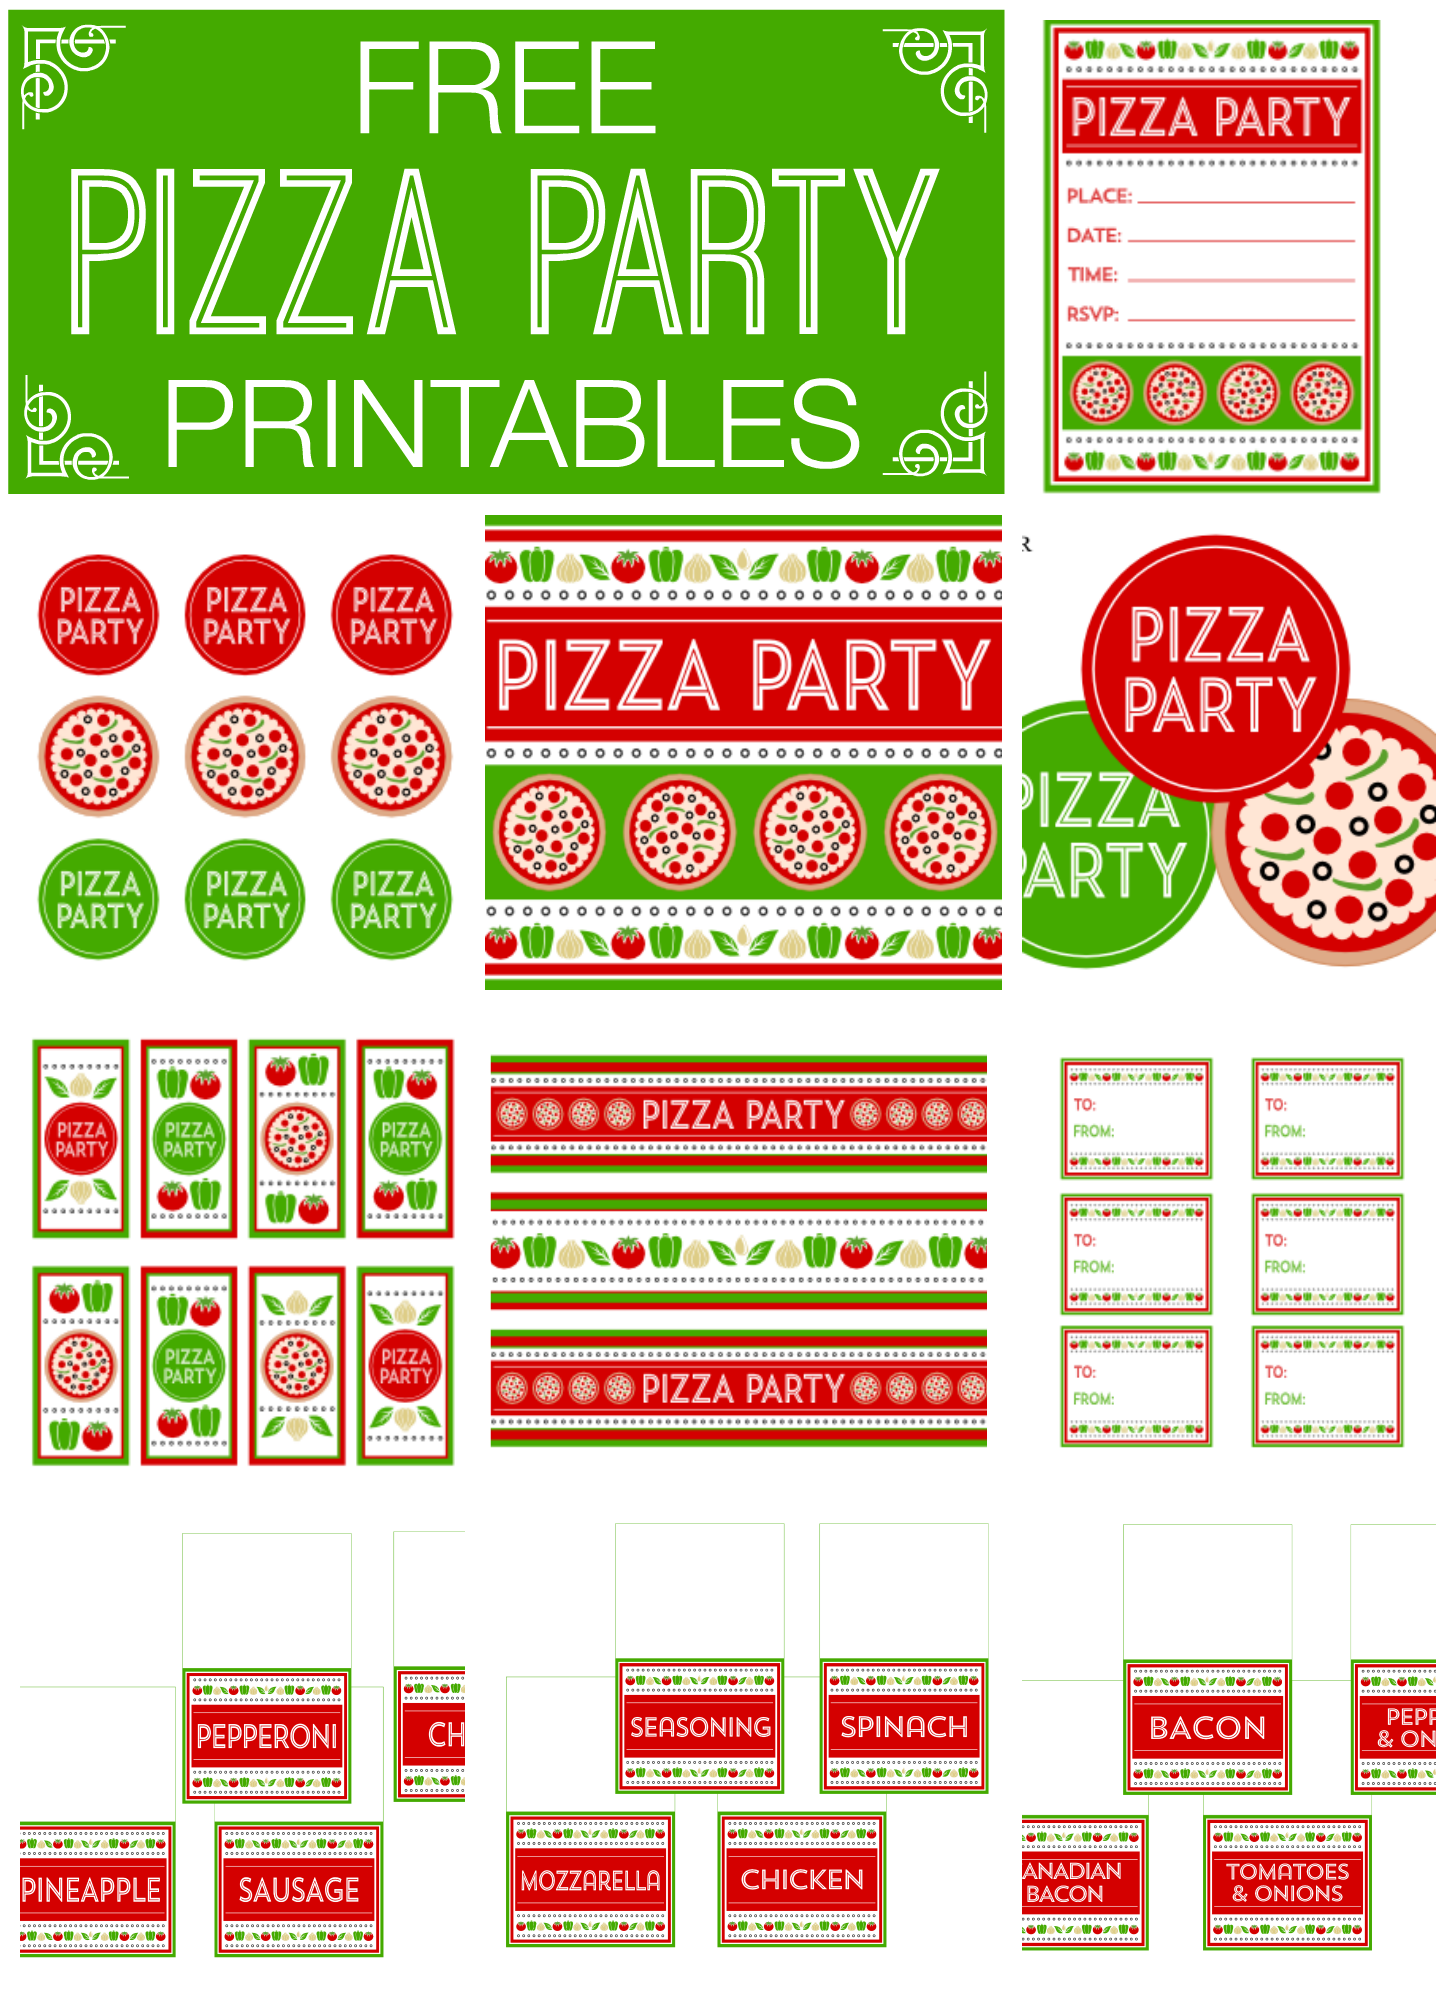 picture about Pizza Printable named Totally free Pizza Bash Printables in opposition to Printabelle Capture My Get together